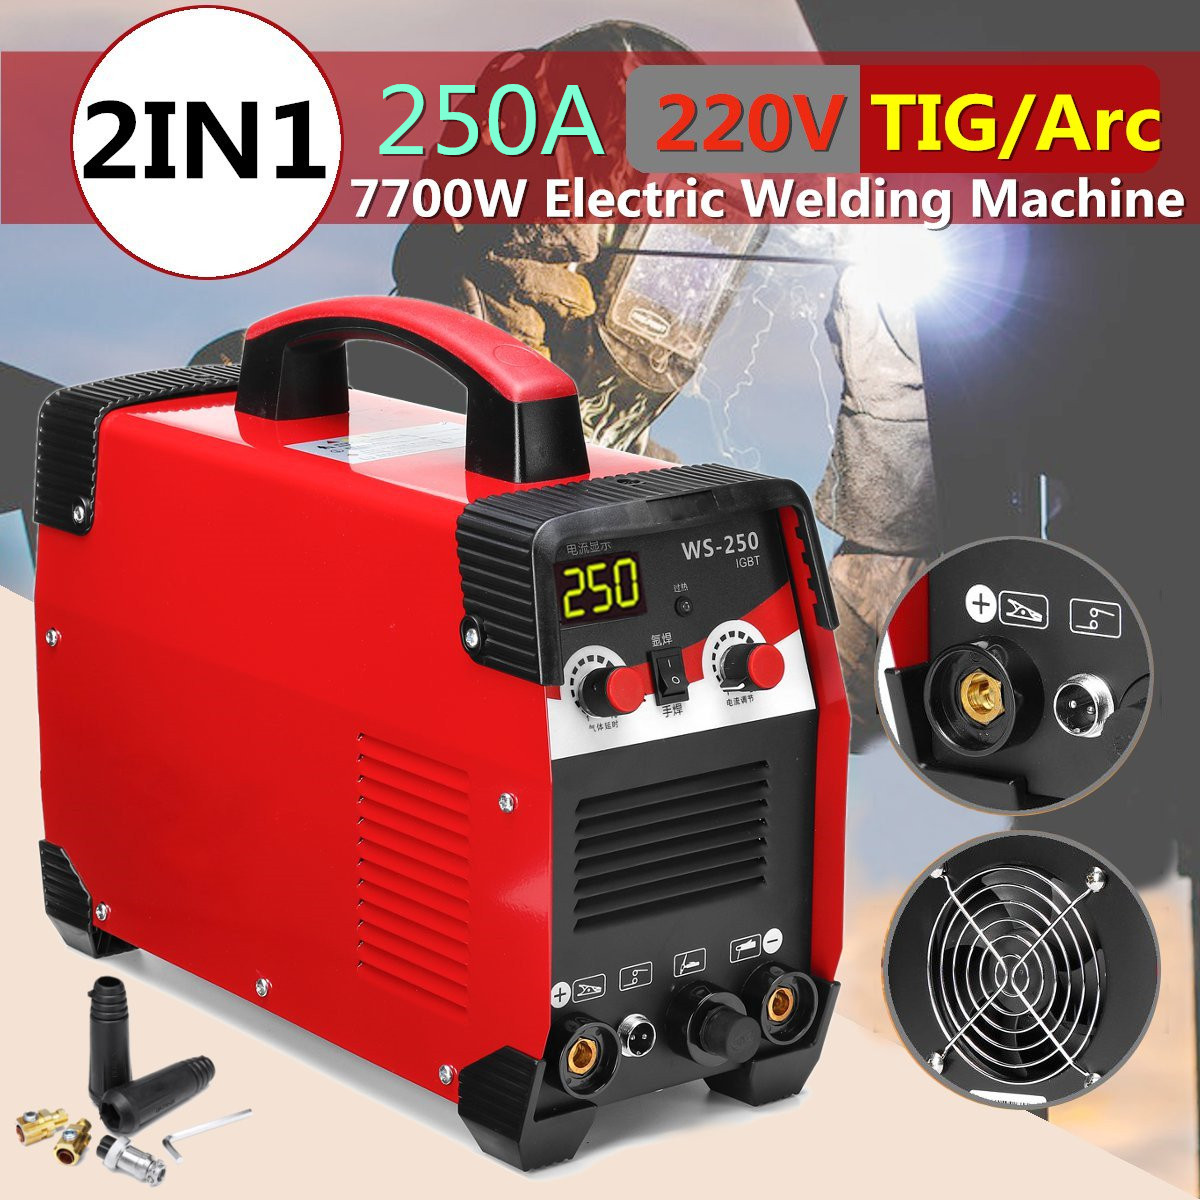 Newest 220V 7700W 2IN1 TIG/ARC Electric Welding Machine 20-250A MMA IGBT STICK Inverter For Welding Working And Electric Working